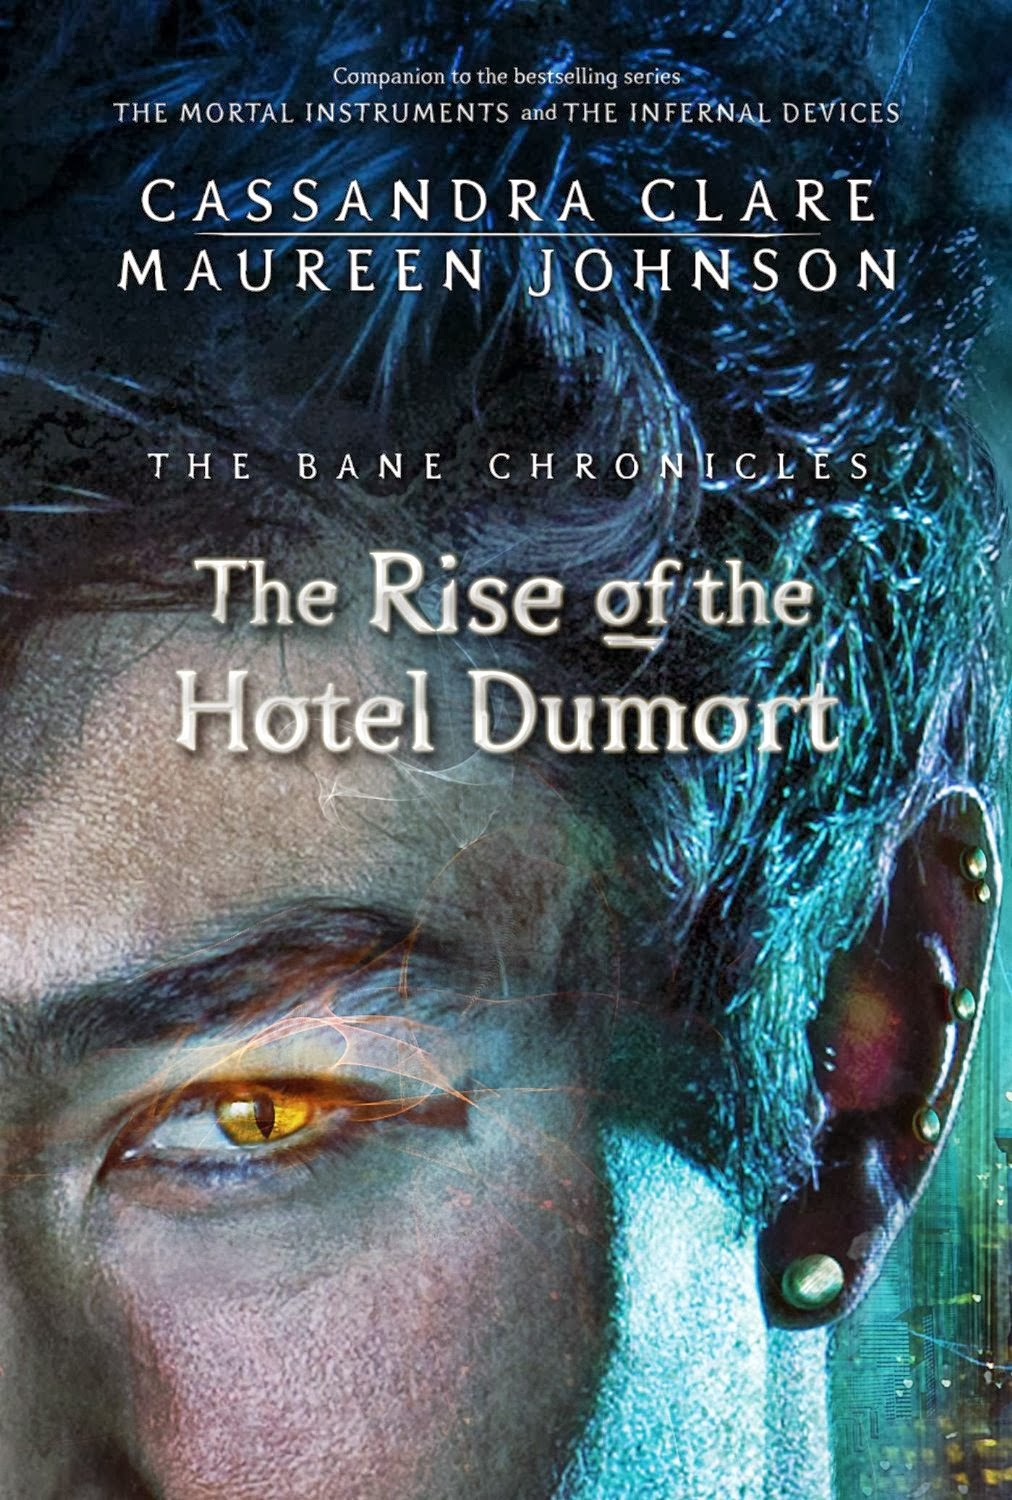 The Bane Chronicles The+rise+of+the+hoter+dumbort